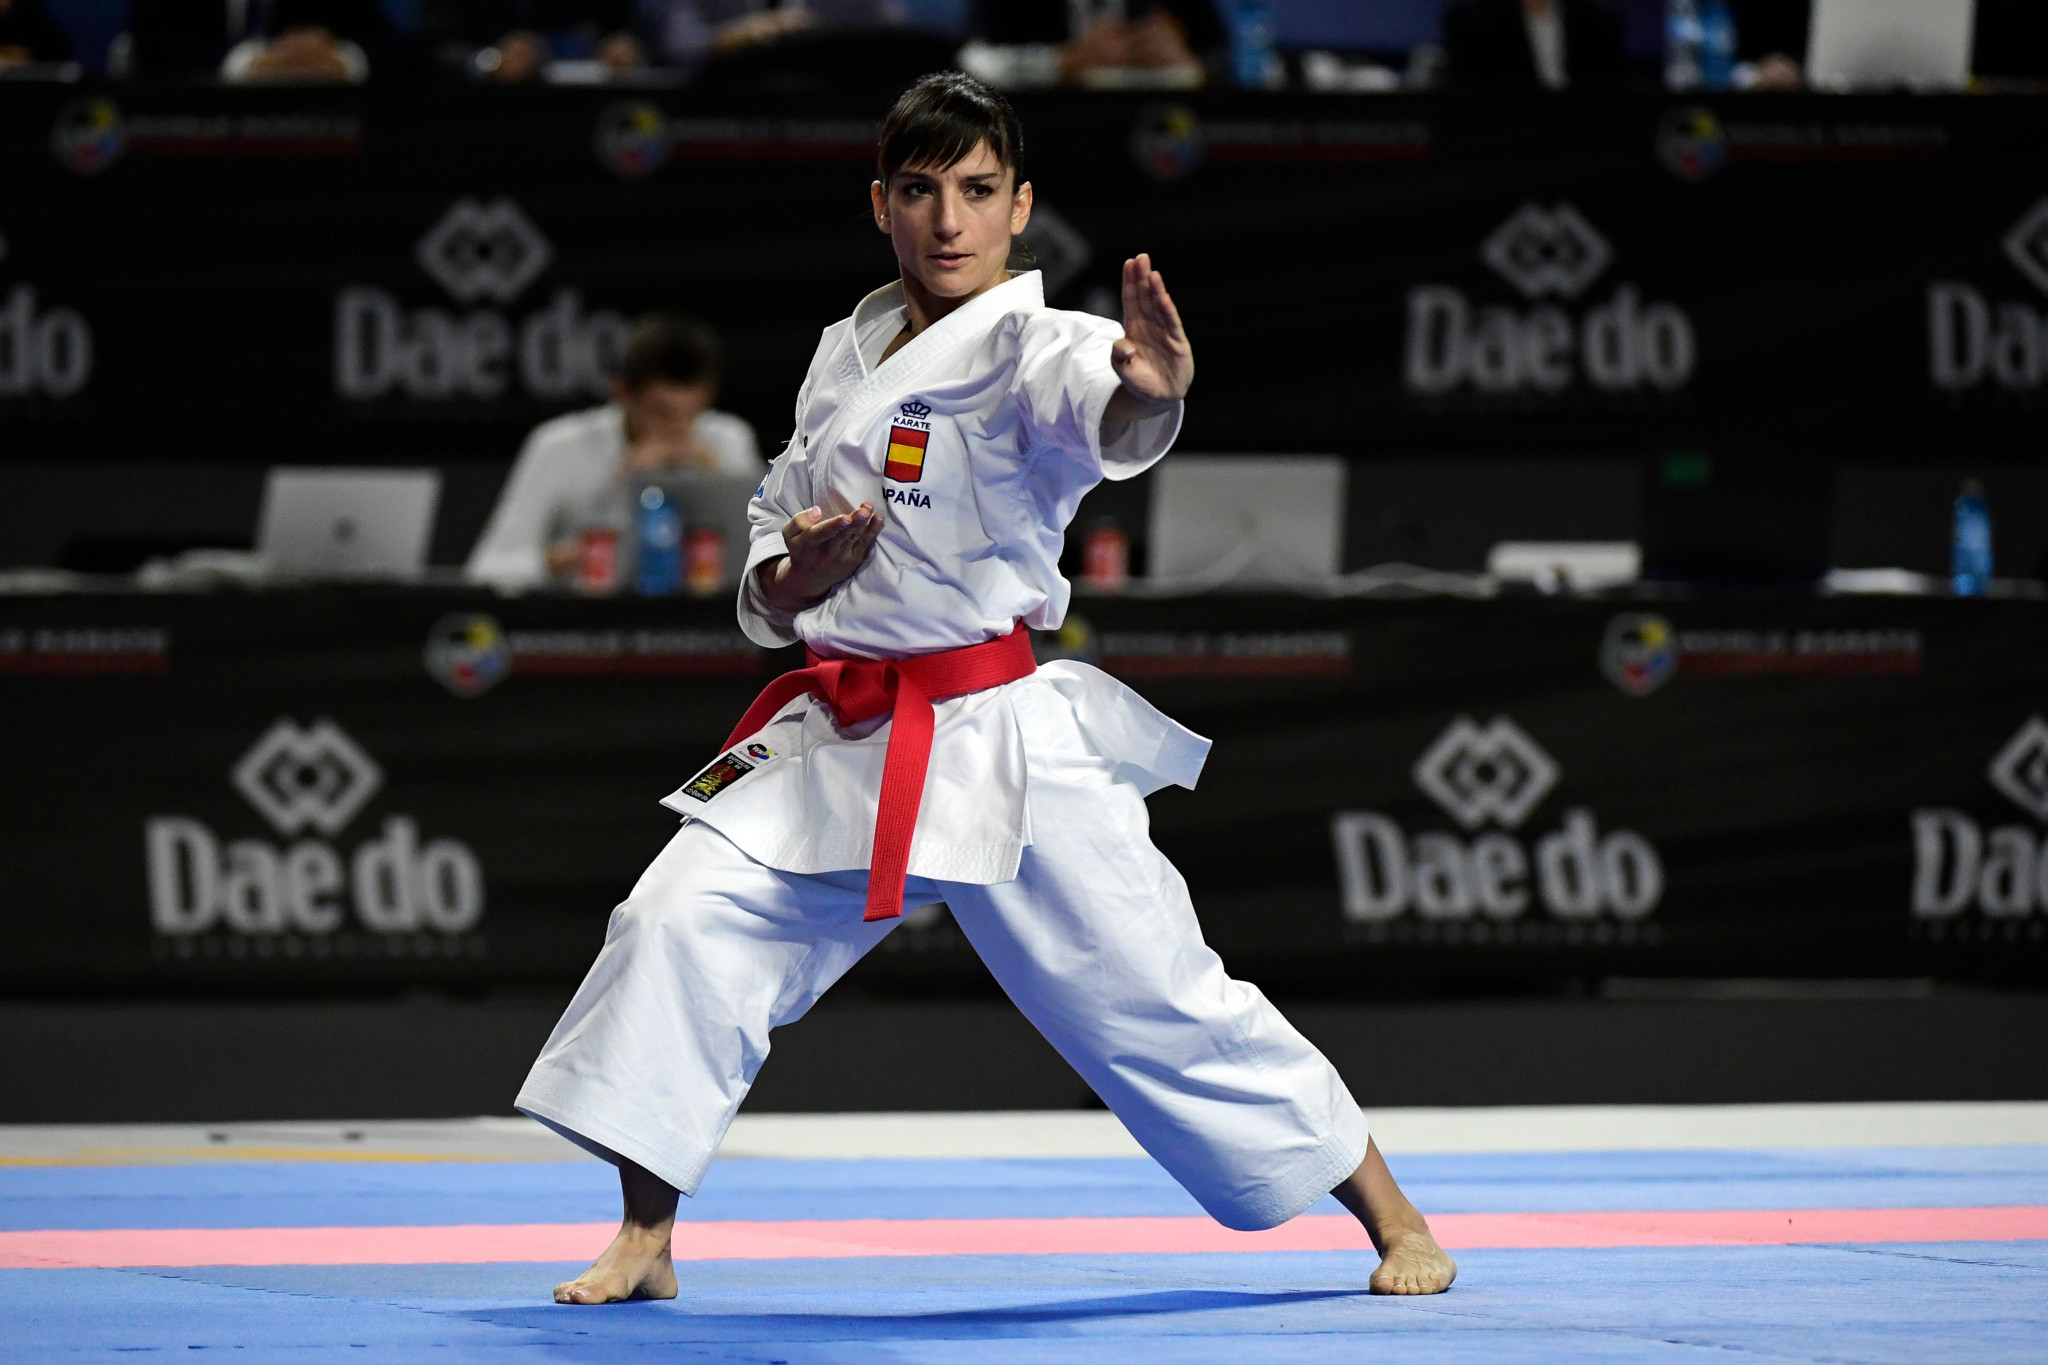 Karate was dropped from the Paris 2024 programme before its Olympic debut at Tokyo 2020 ©Getty Images